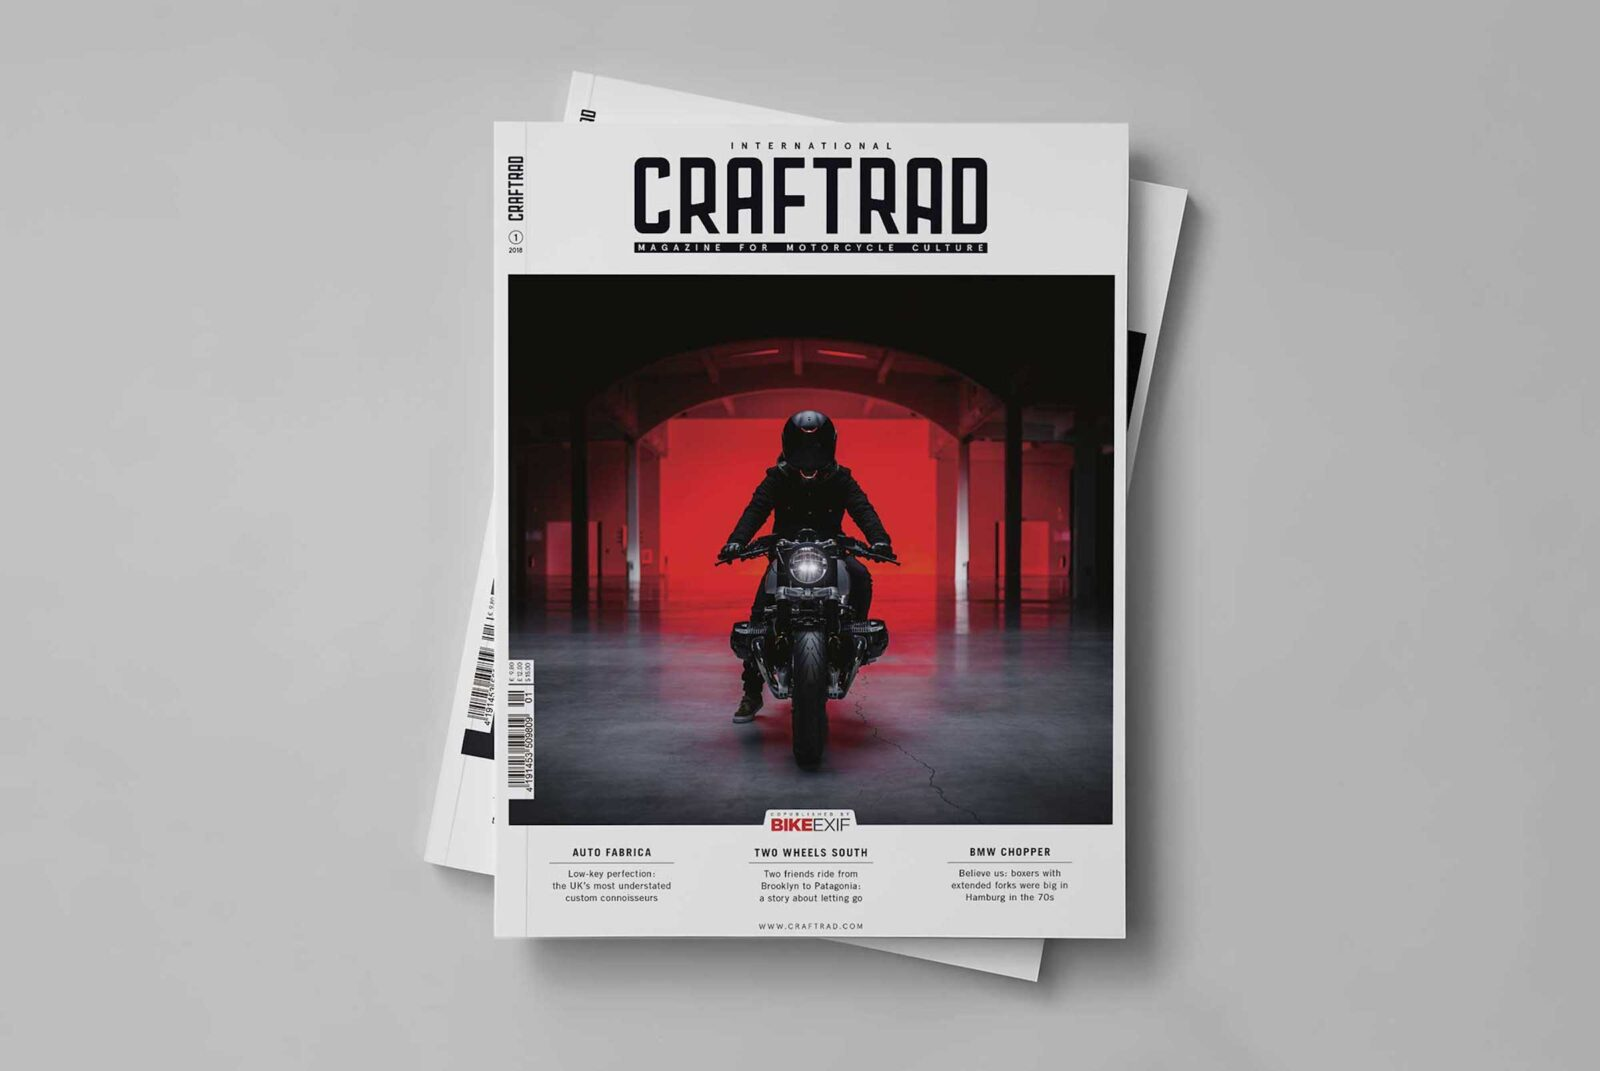 Bike EXIF x Craftrad Magazine